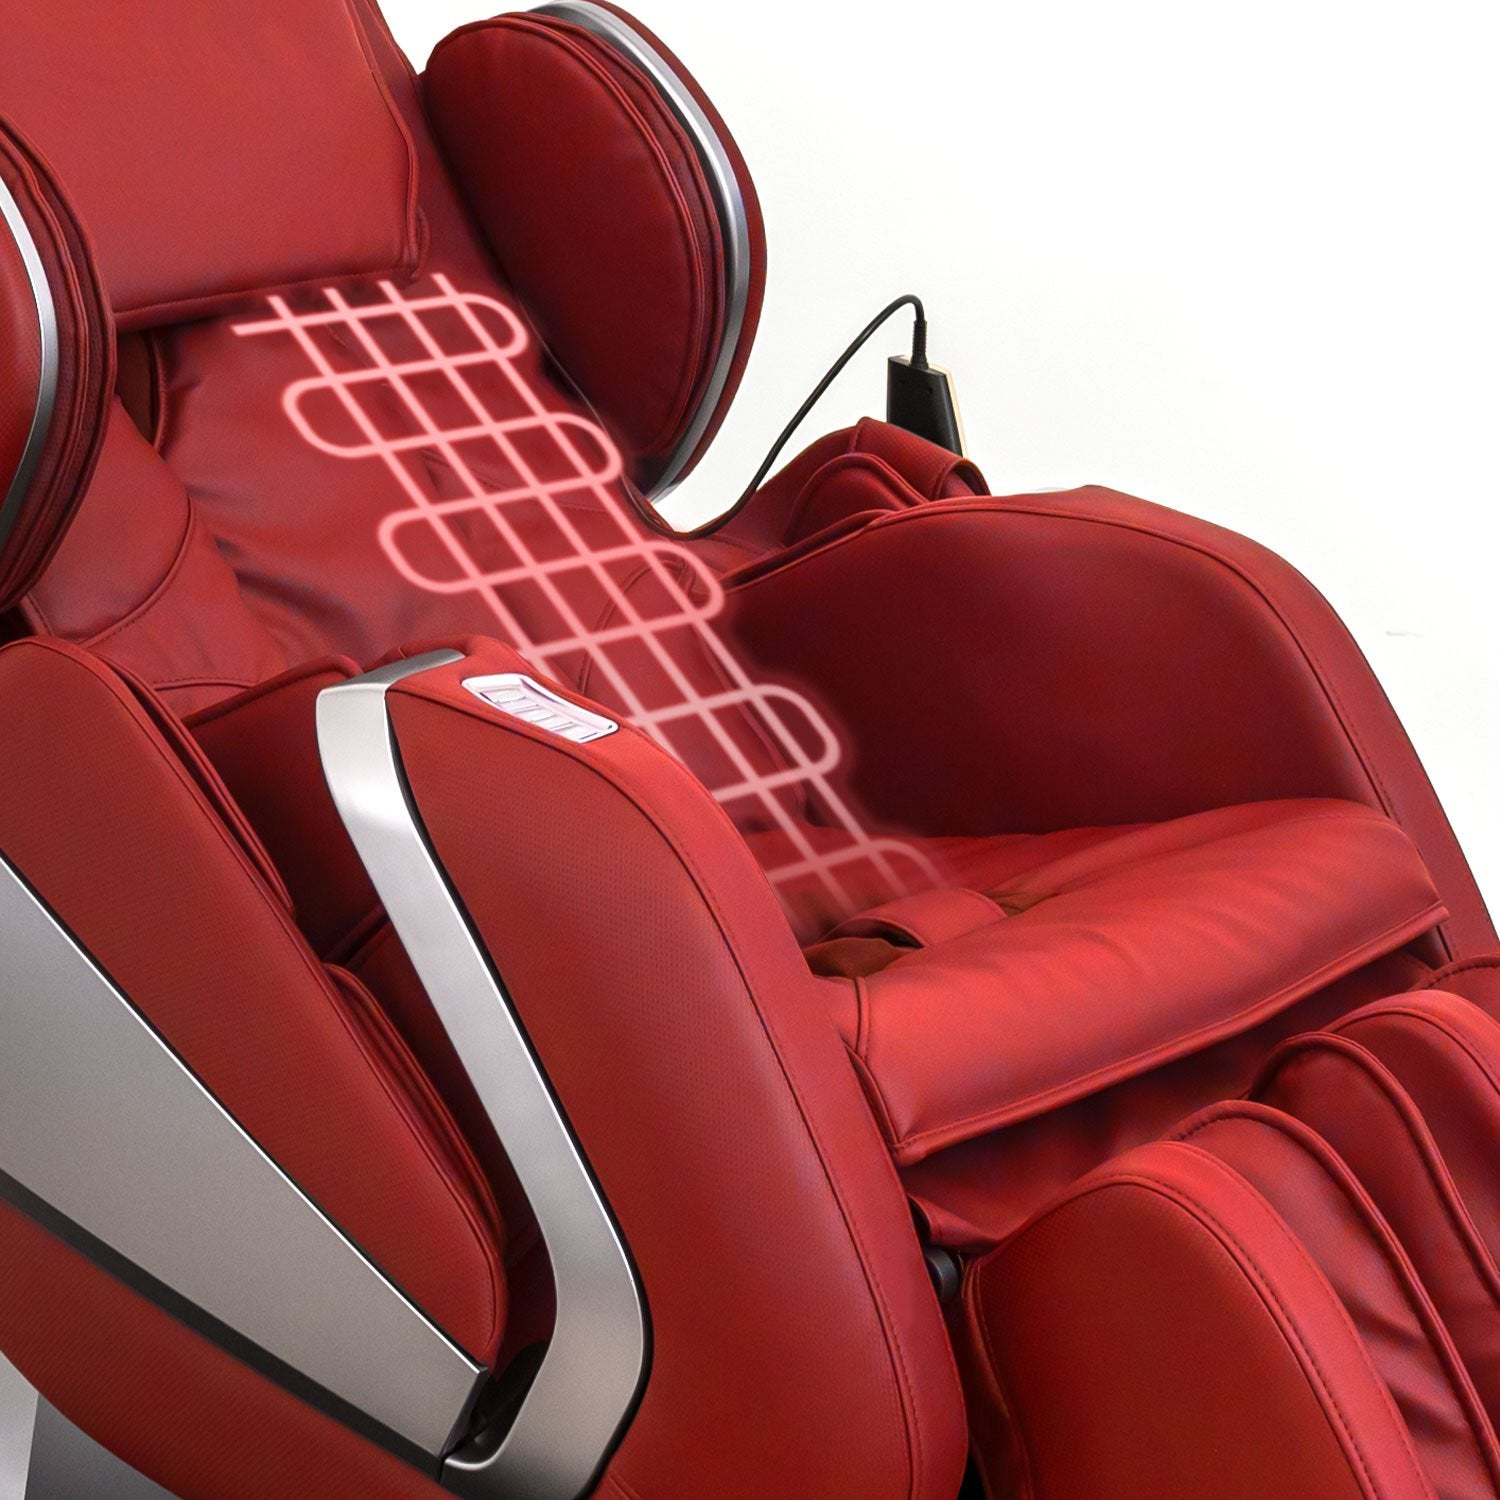 Massage chair designs